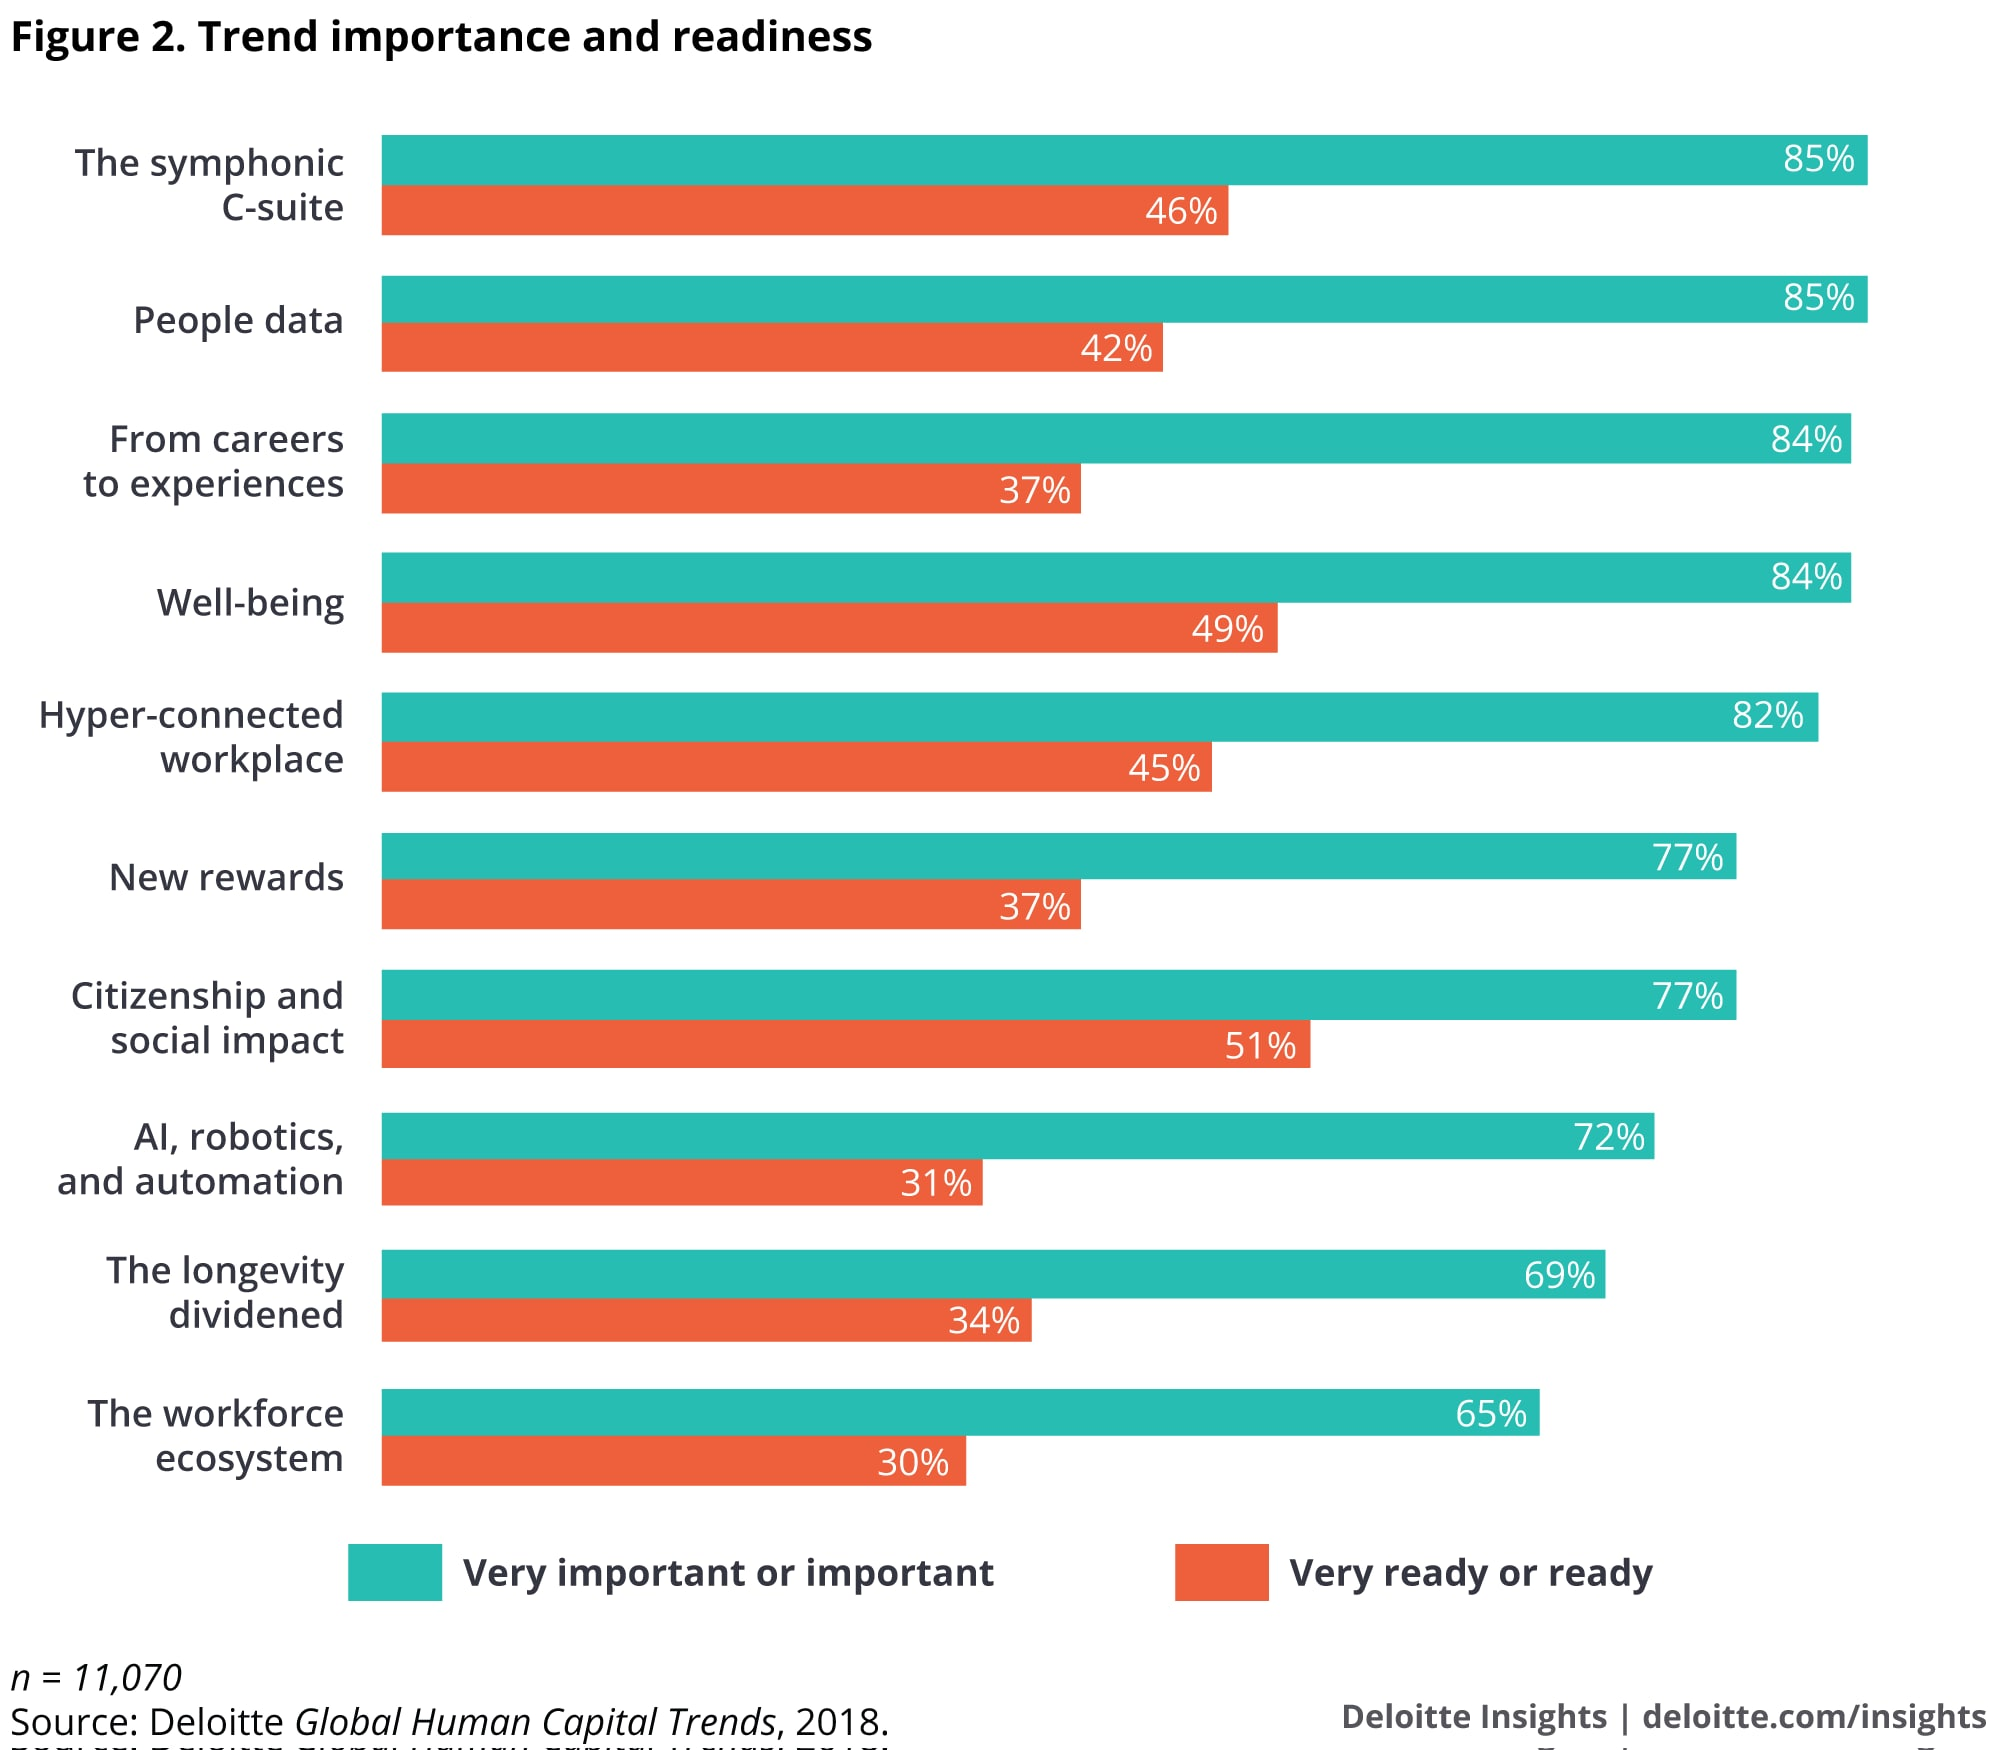 Trend importance and readiness